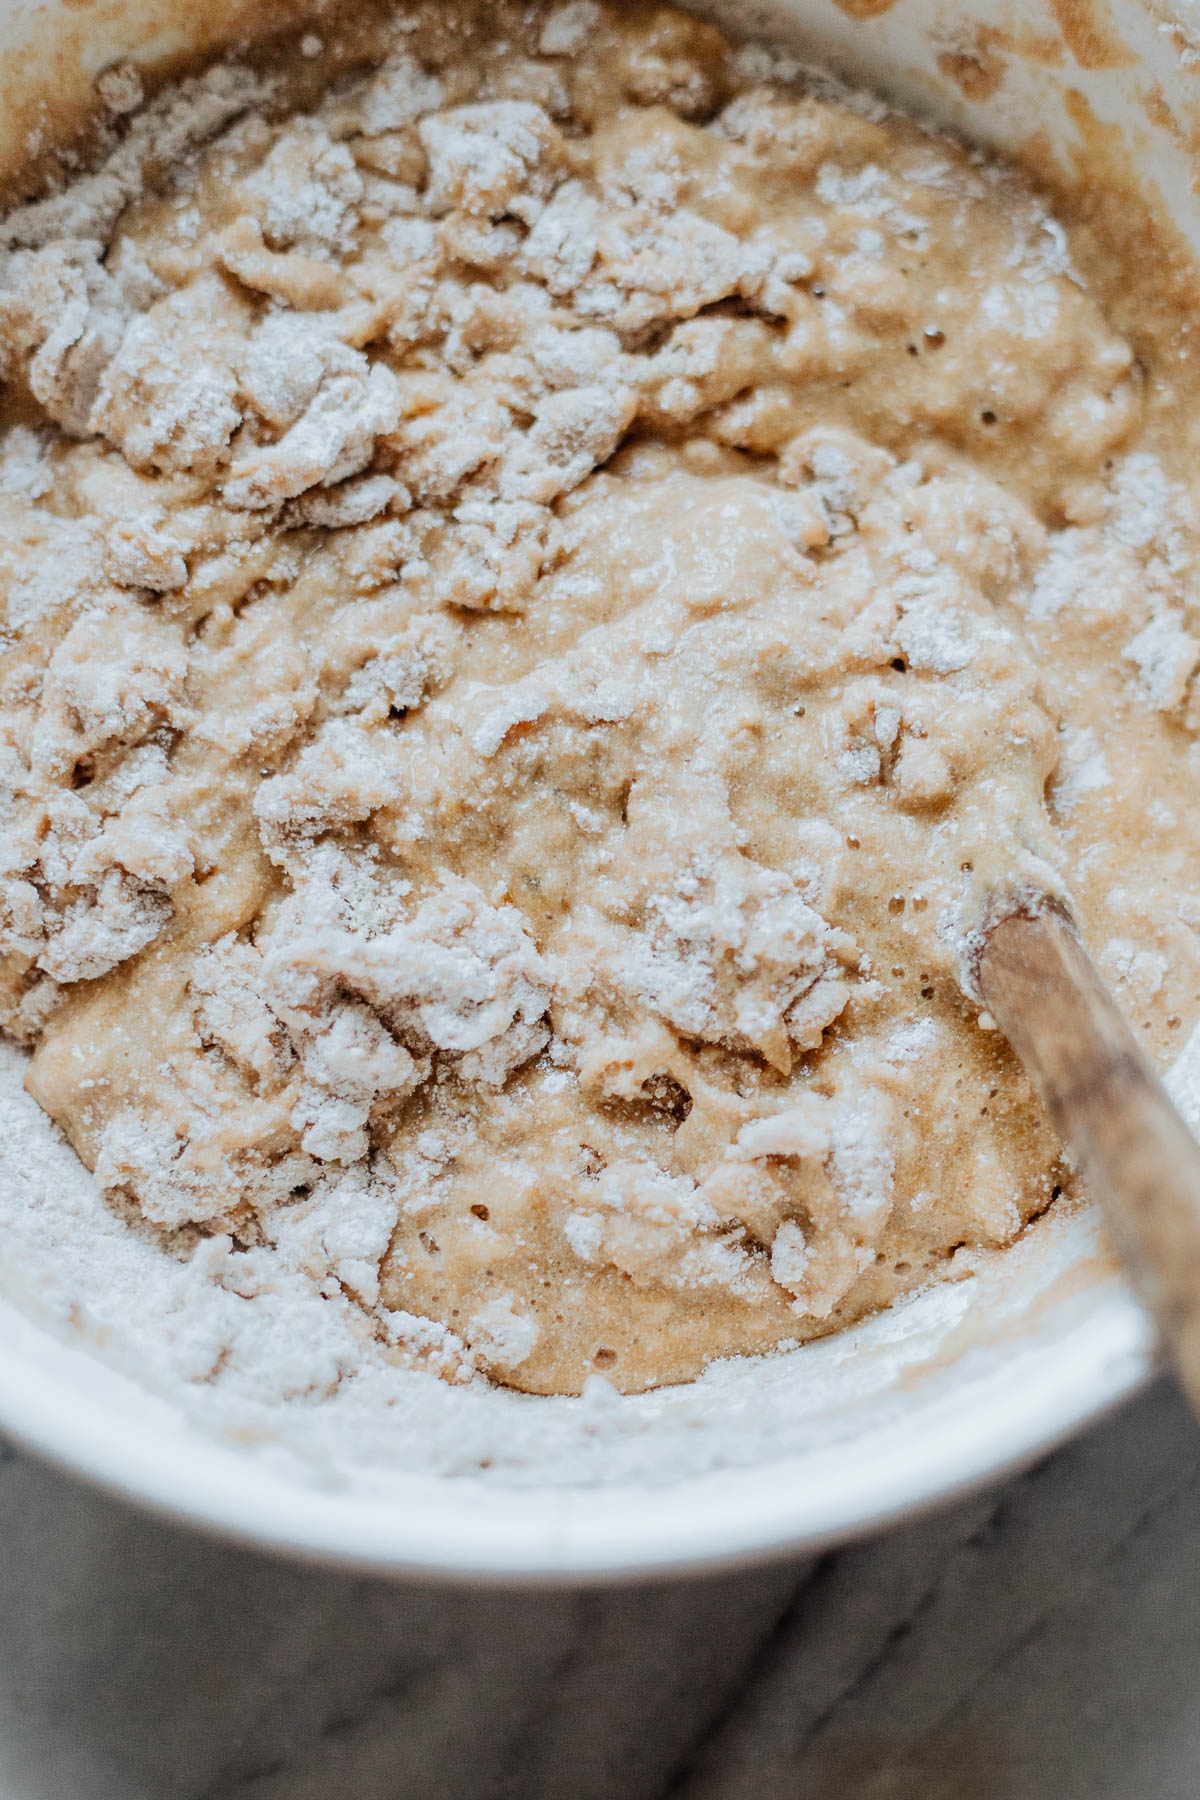 A bowl of unmixed muffin batter.